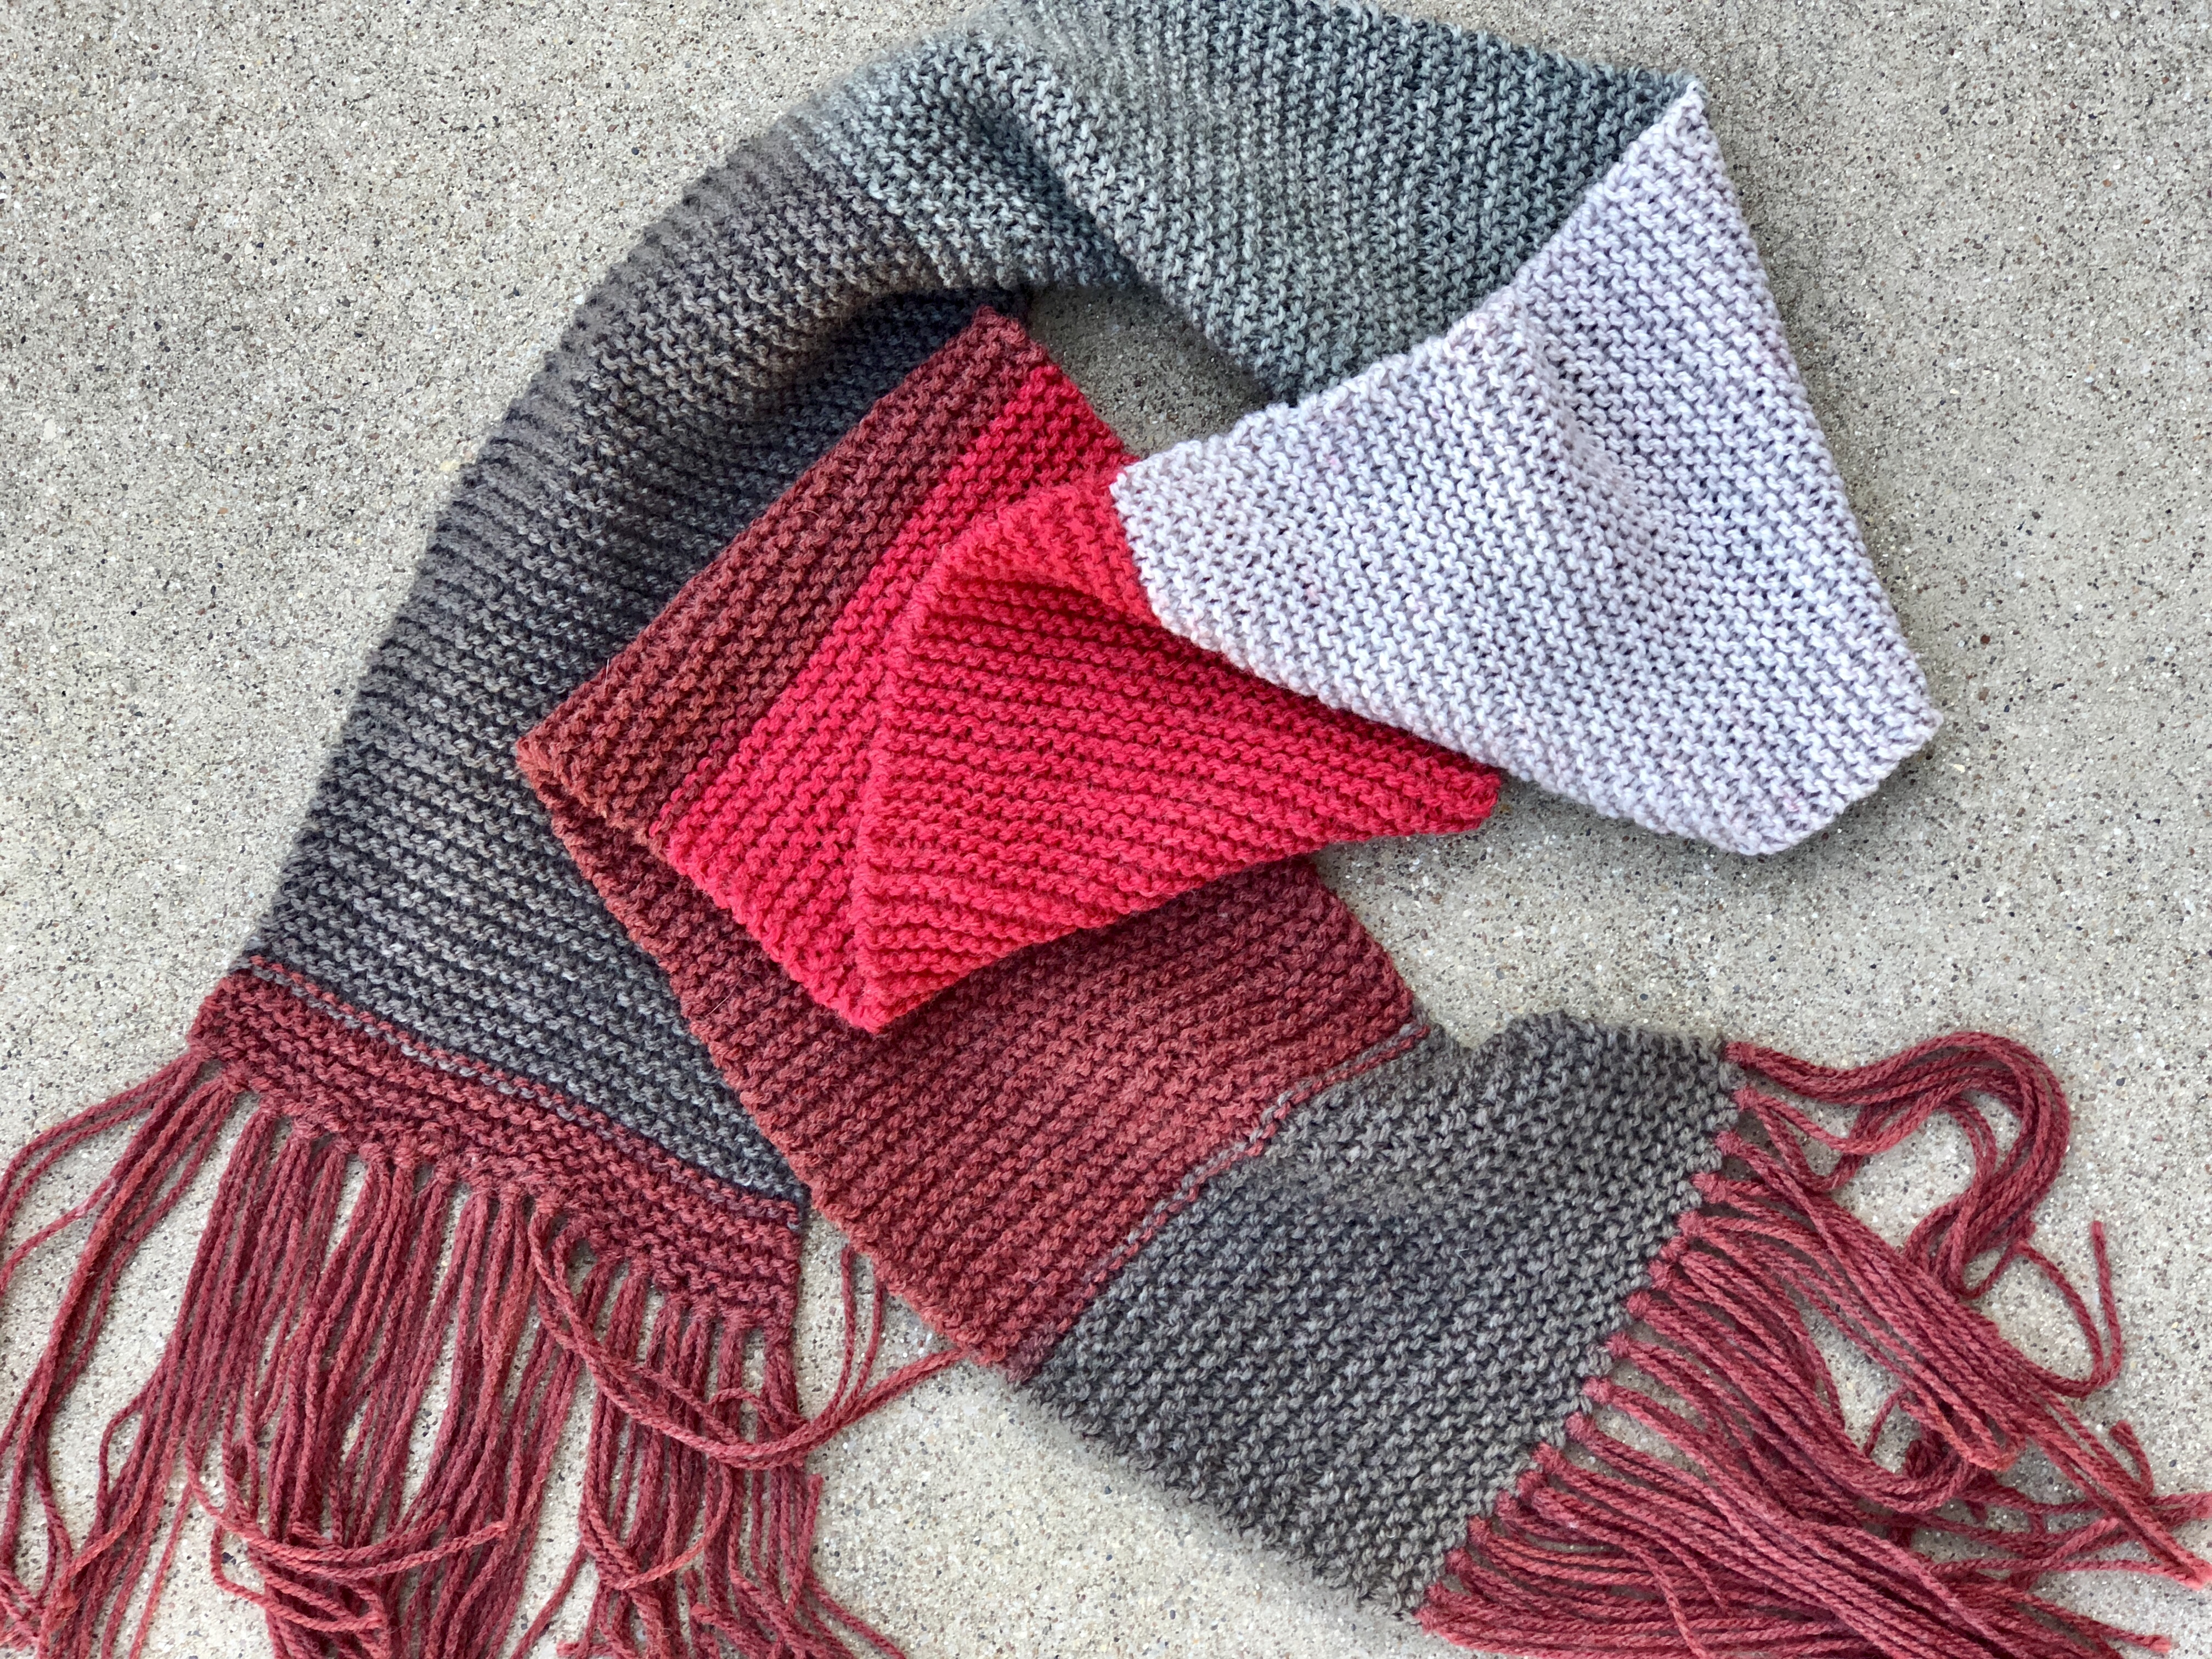 Knitting Scarf Pattern For Beginners Free Free Pattern Review Caron Cakes Basic Knit Scarf Marni Made It